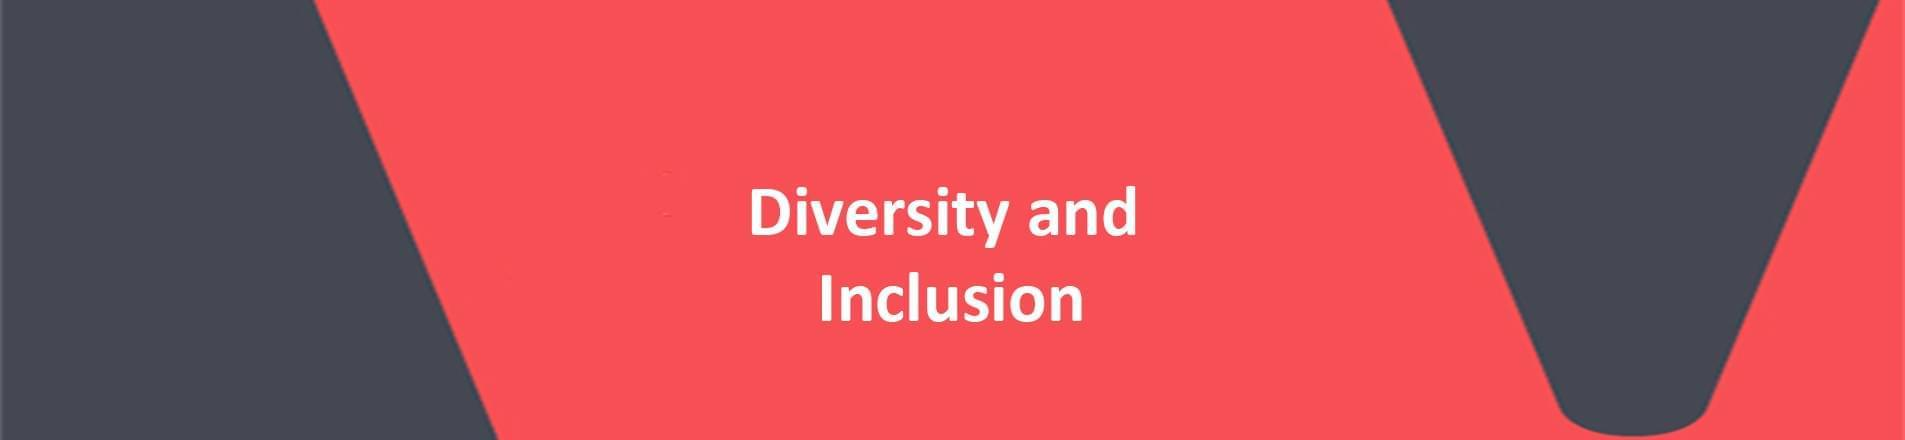 Image of the words diversity and inclusion on a red background